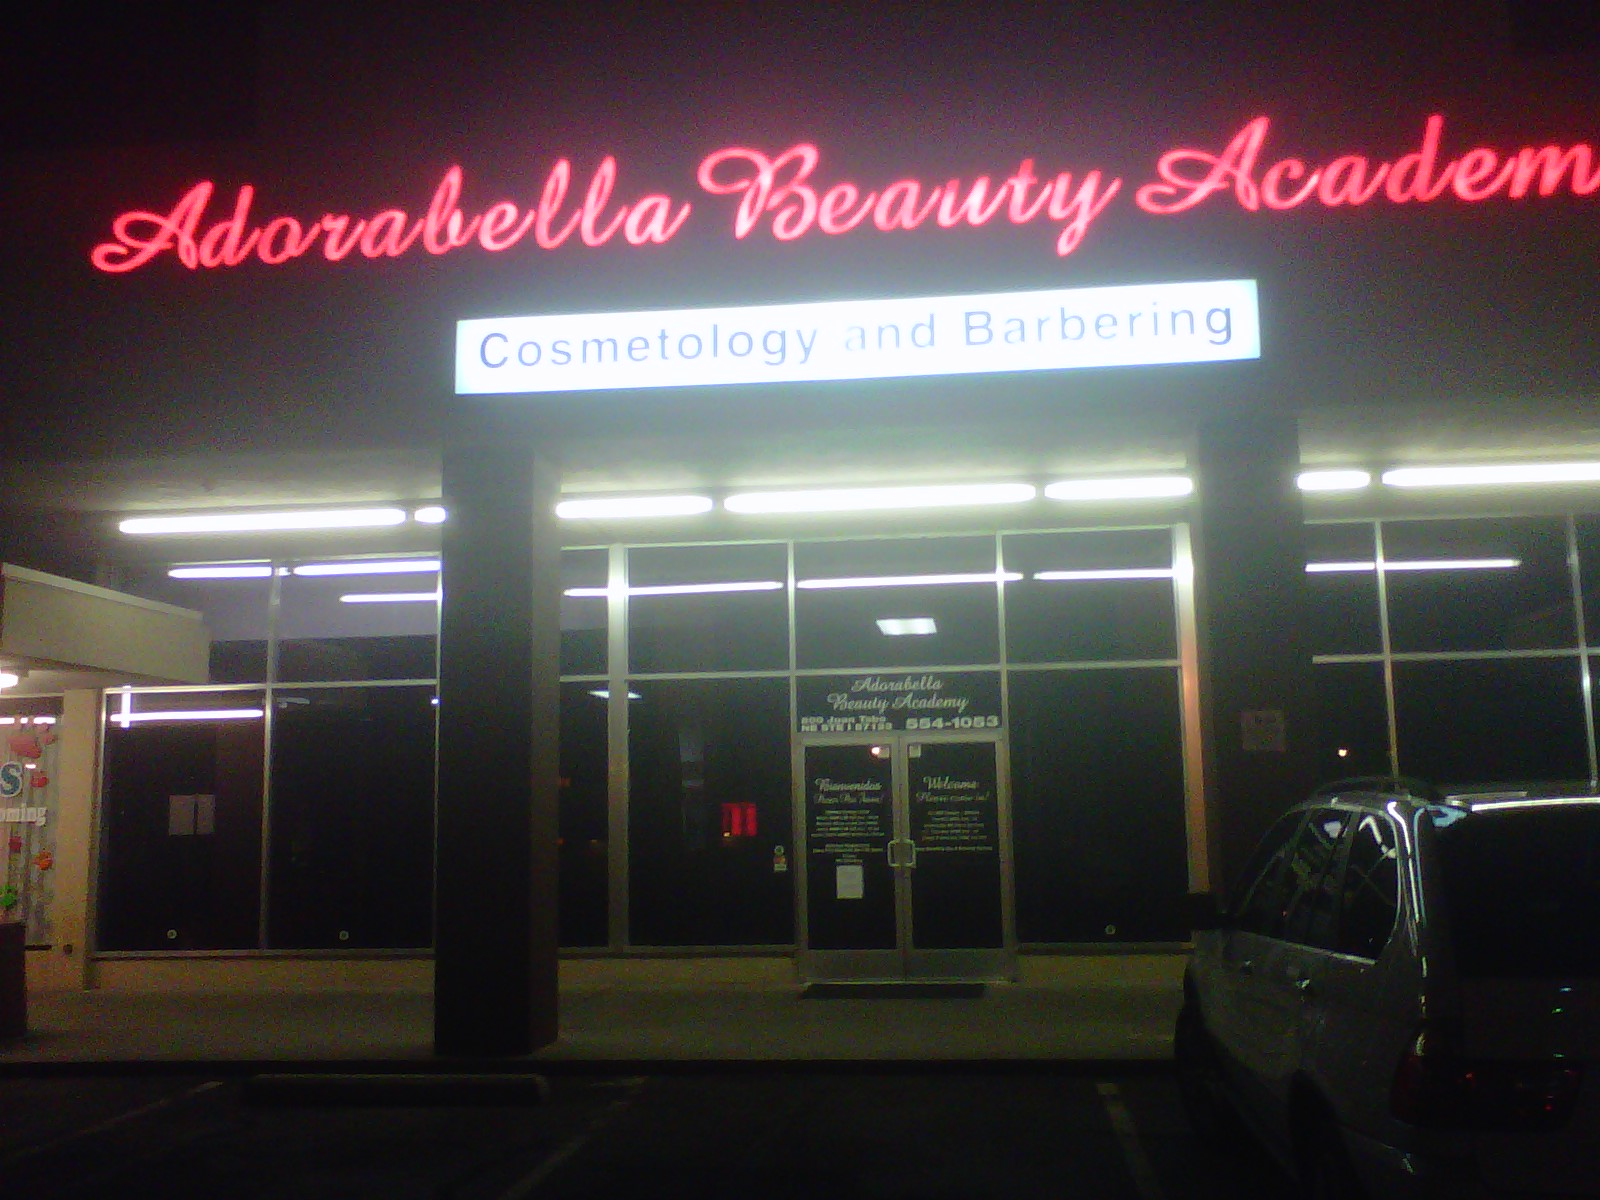 Adorabella Beauty Academy, 800 Juan Tabo Blvd NE, Suite I, Albuquerque , New Mexico , 87123, United States